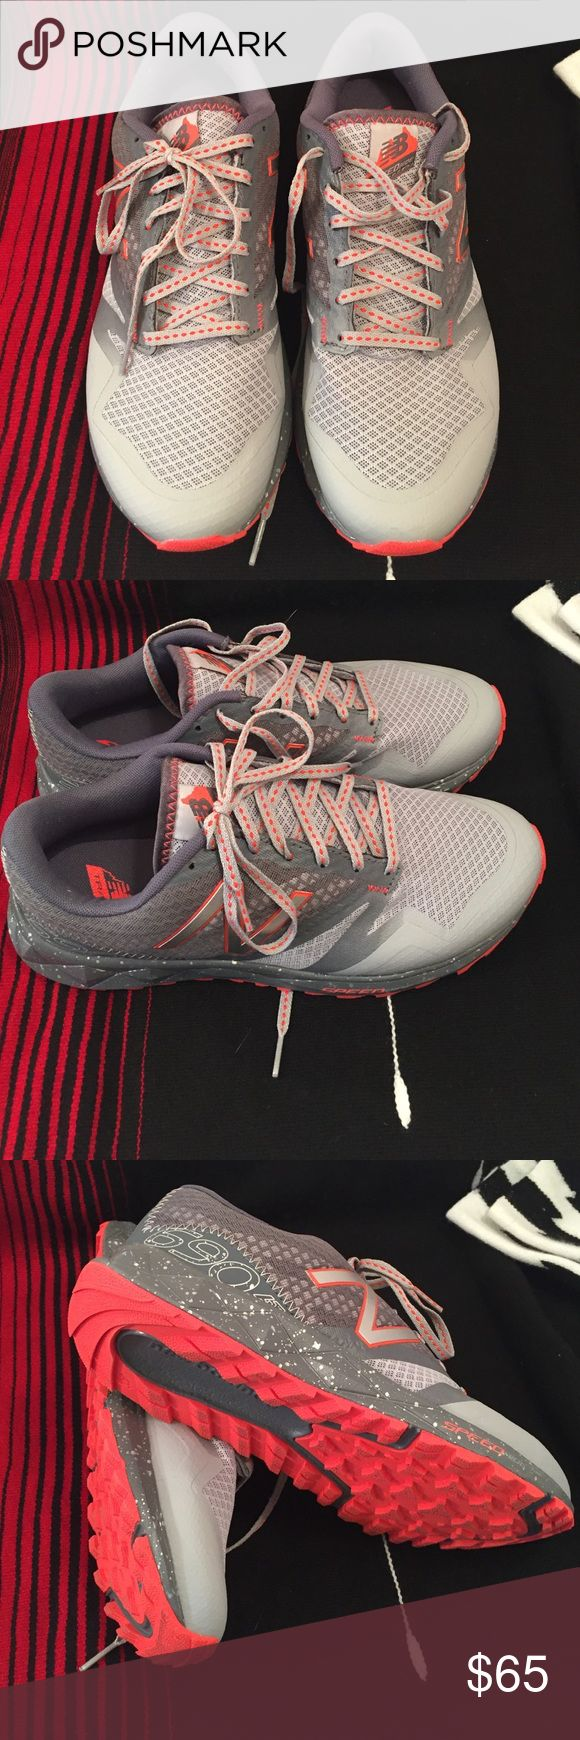 New Balance Tennis shoes New balance all terrain tennis shoes! New New Balance Shoes Sneakers